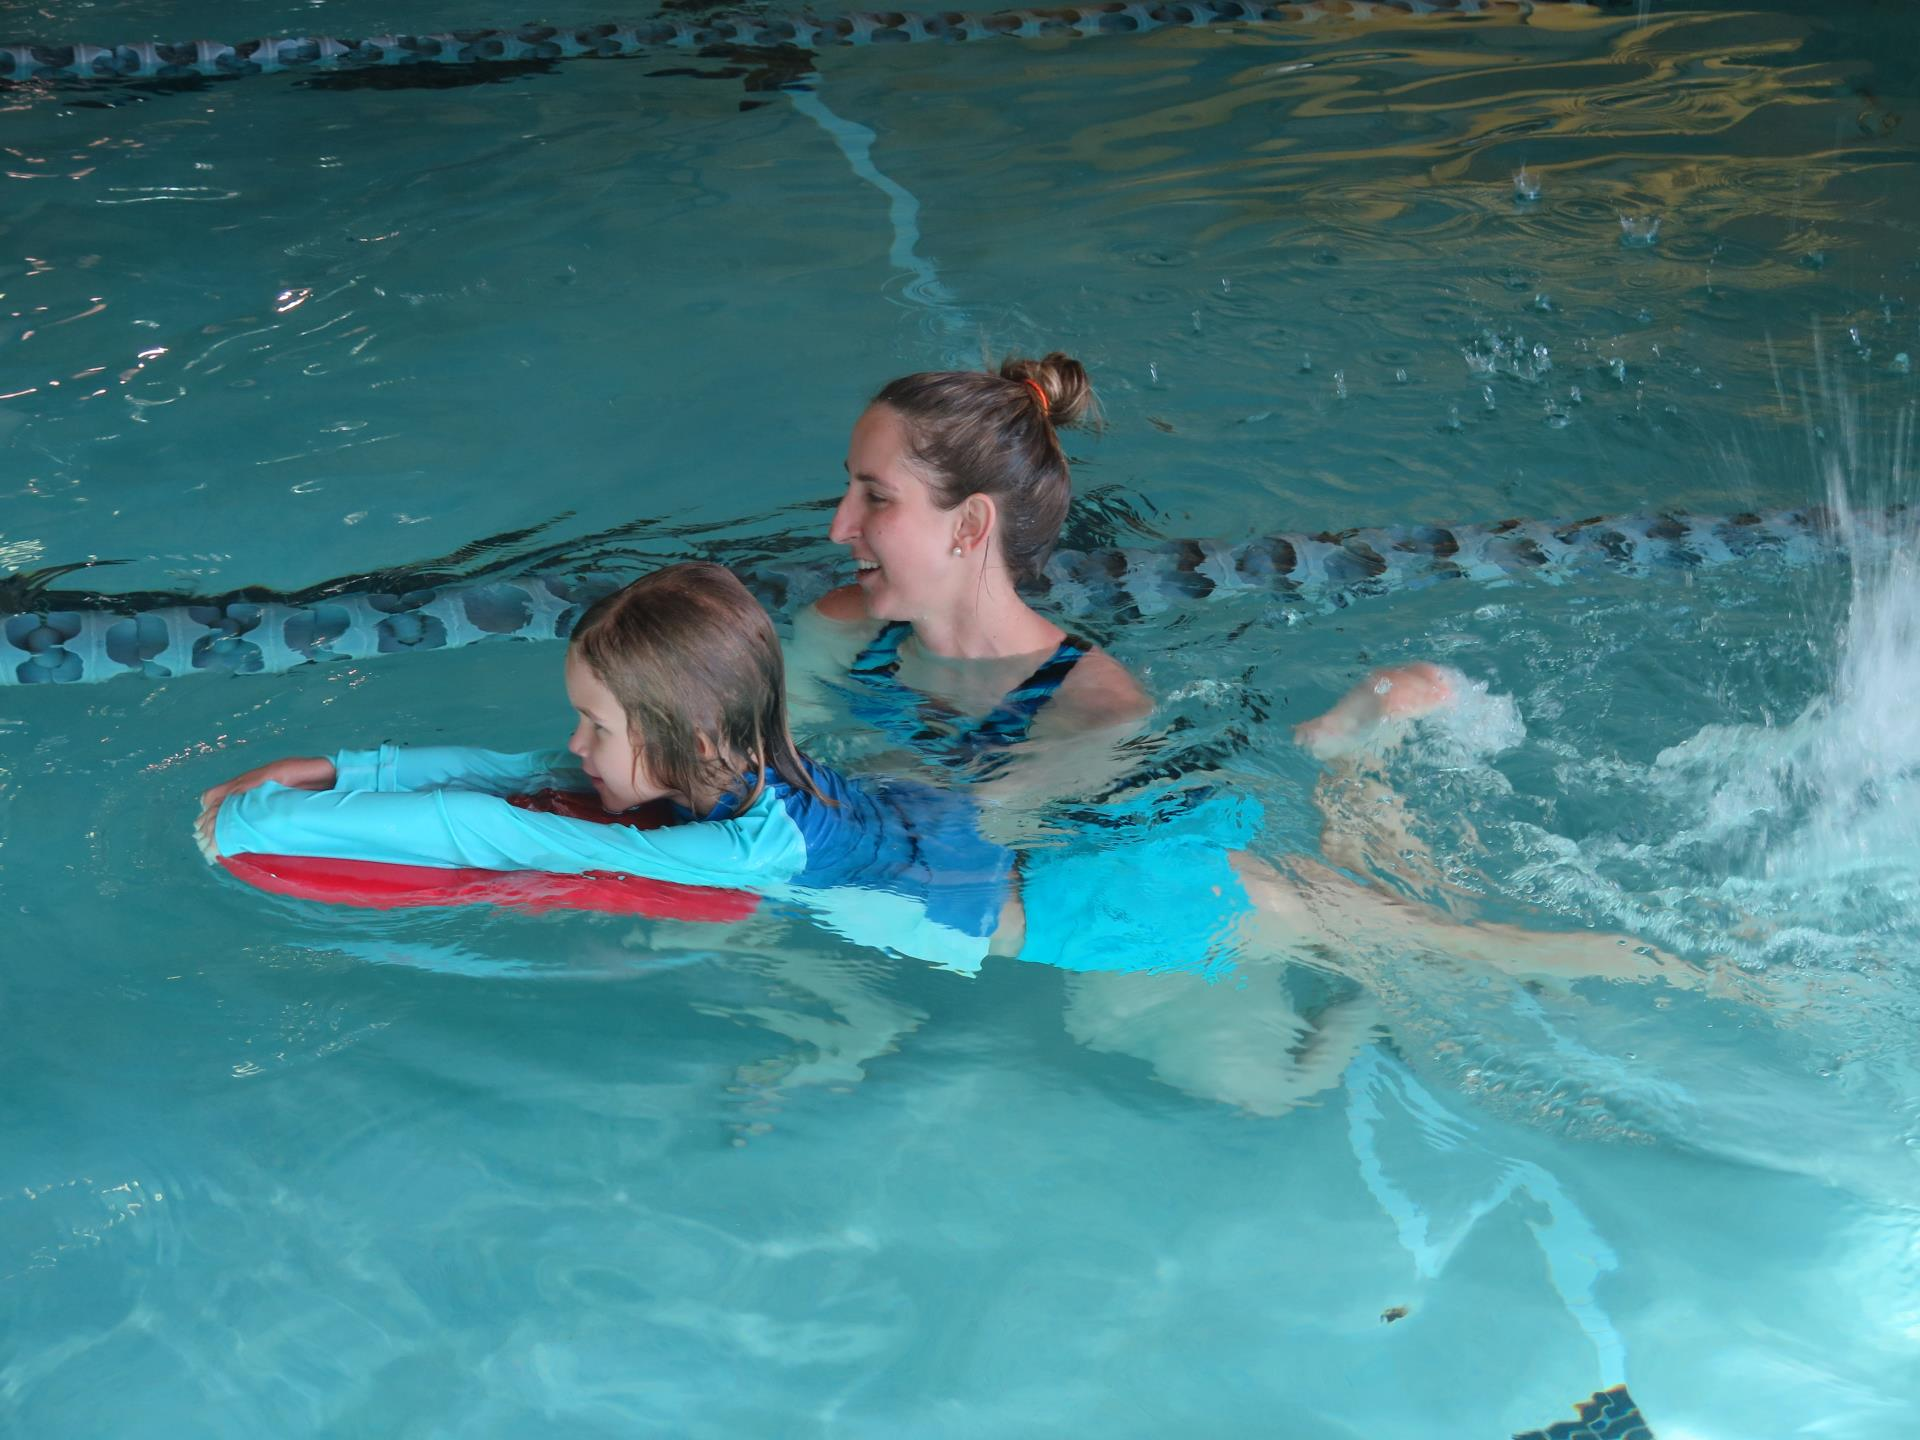 Female swimming instructor with girl with kickboard in pool